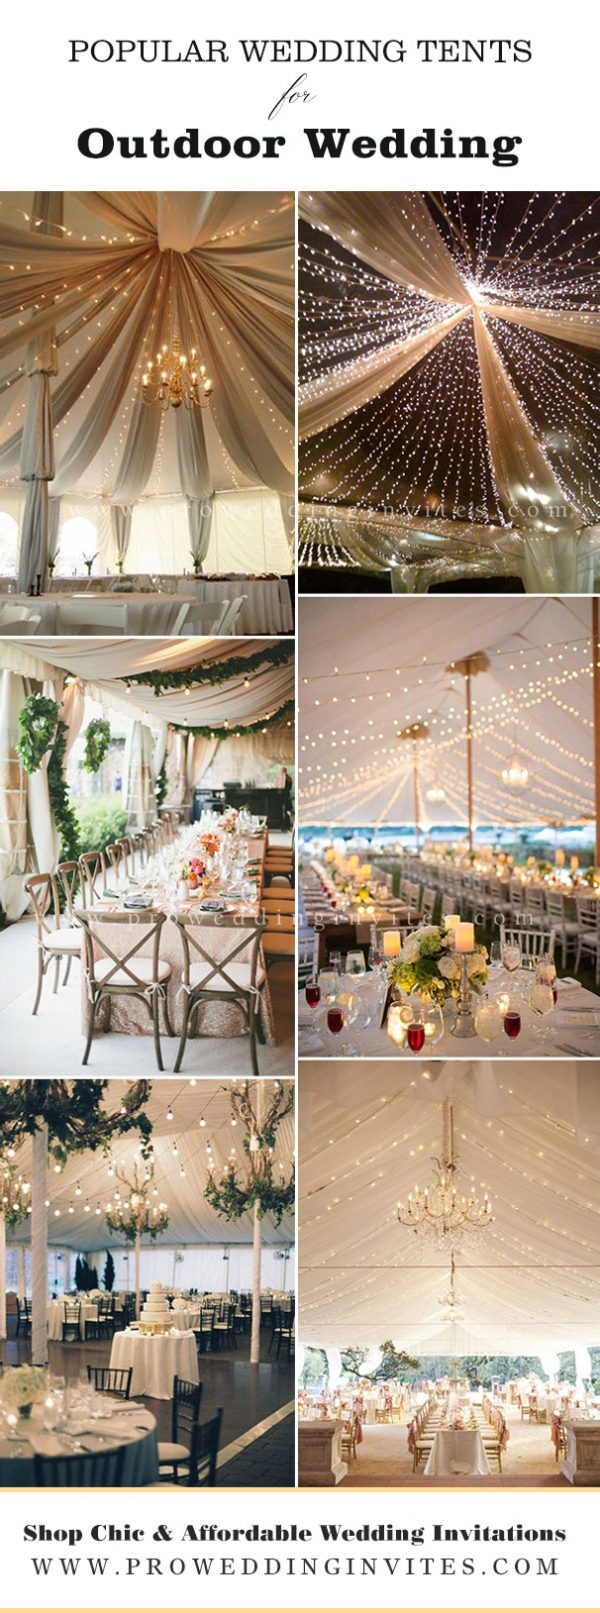 Draped fabric ceiling with romantic lights